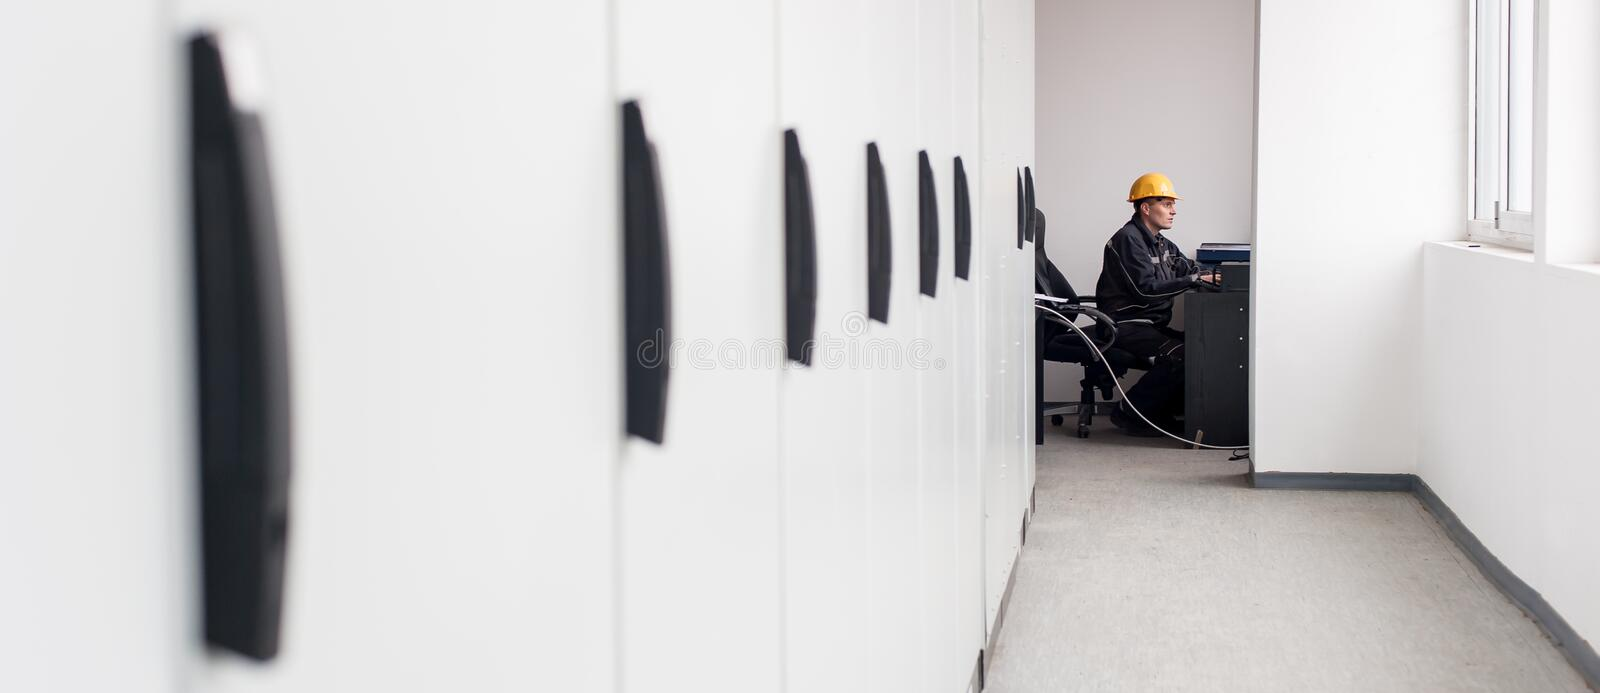 Maintenance engineer inspect relay protection system with laptop stock photography